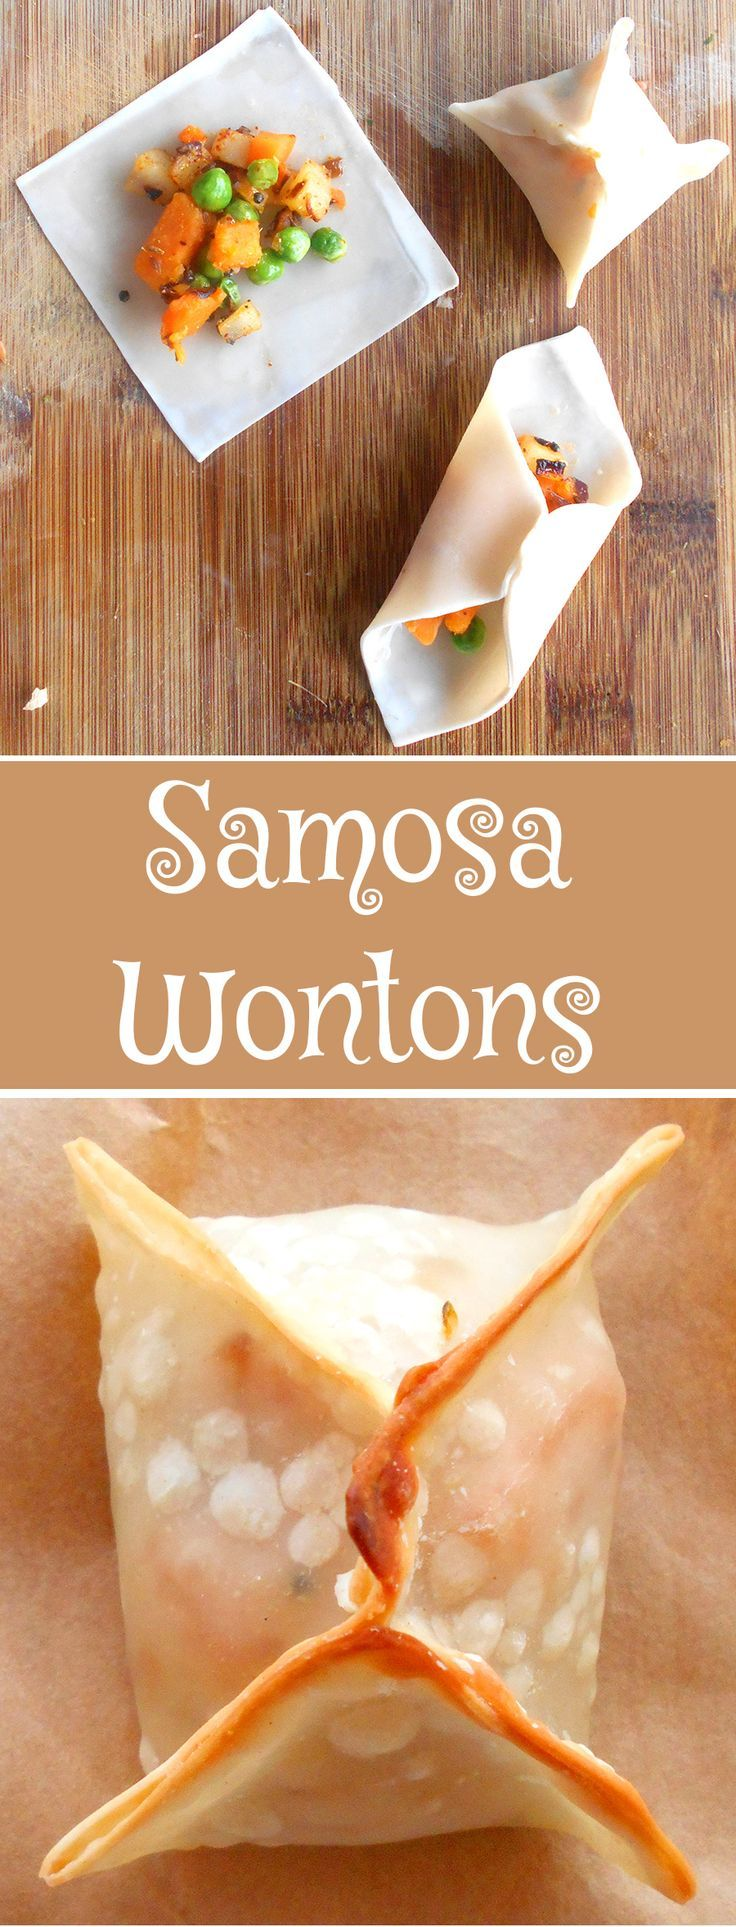 The easiest way to make samosas.  Made these healthier samosas.  They are baked, not fried and made using wontons.  They are great comfort food snacks.